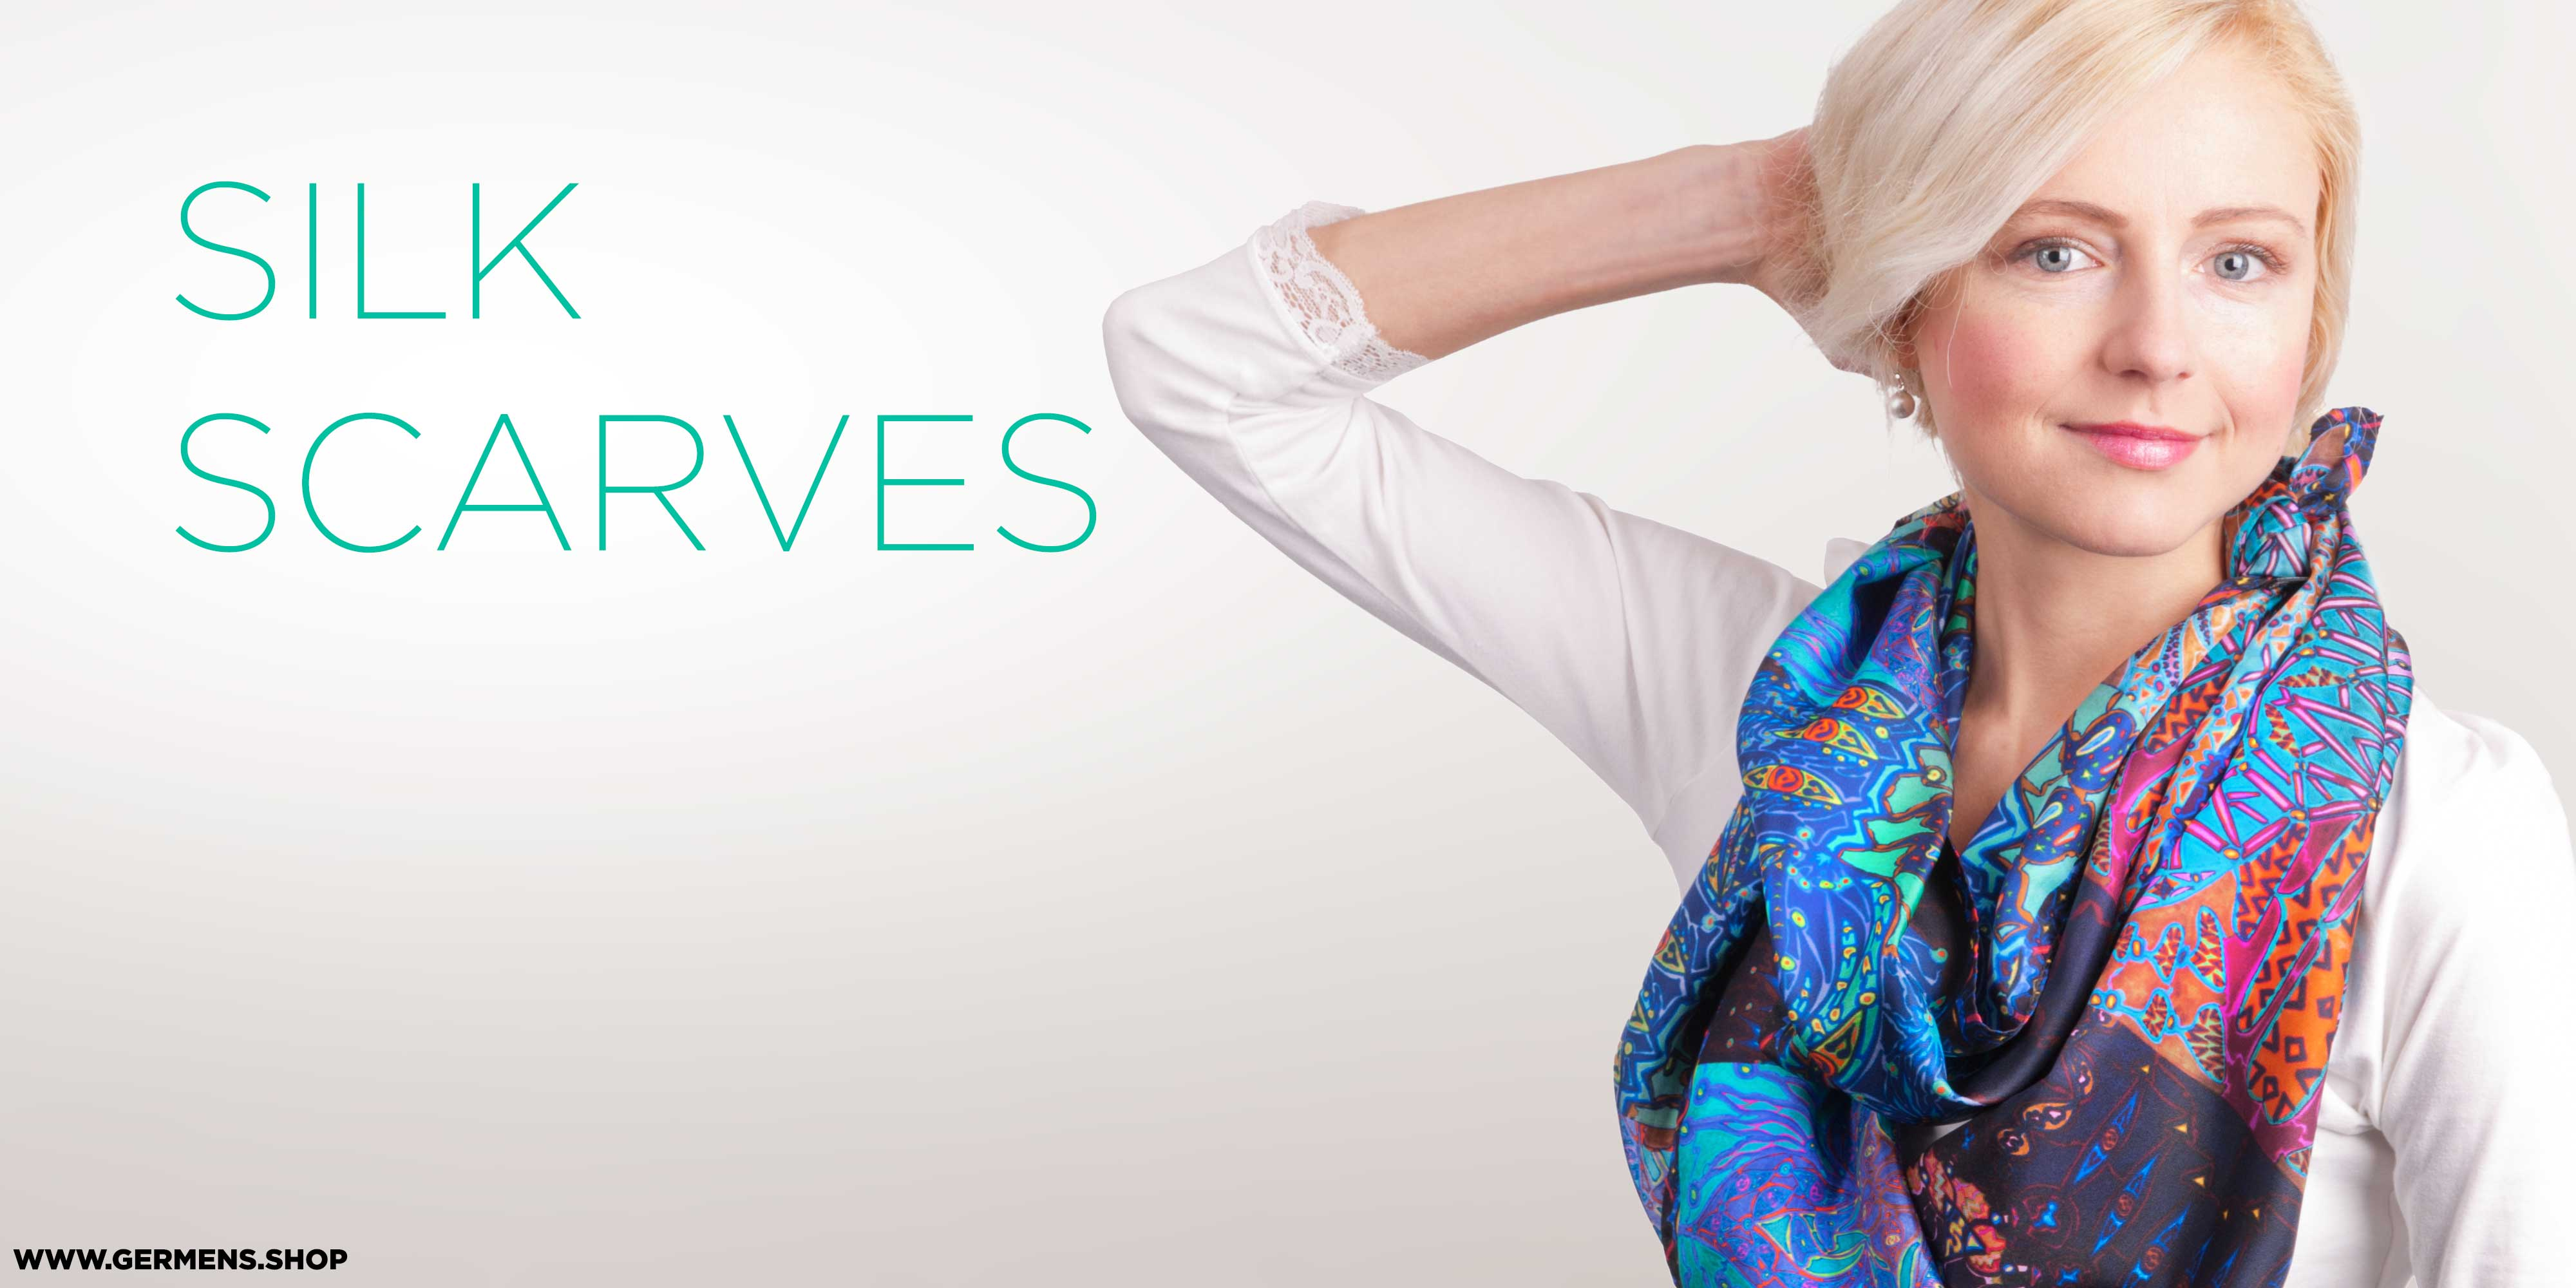 GERMENS Ladies fashion - silk scarves